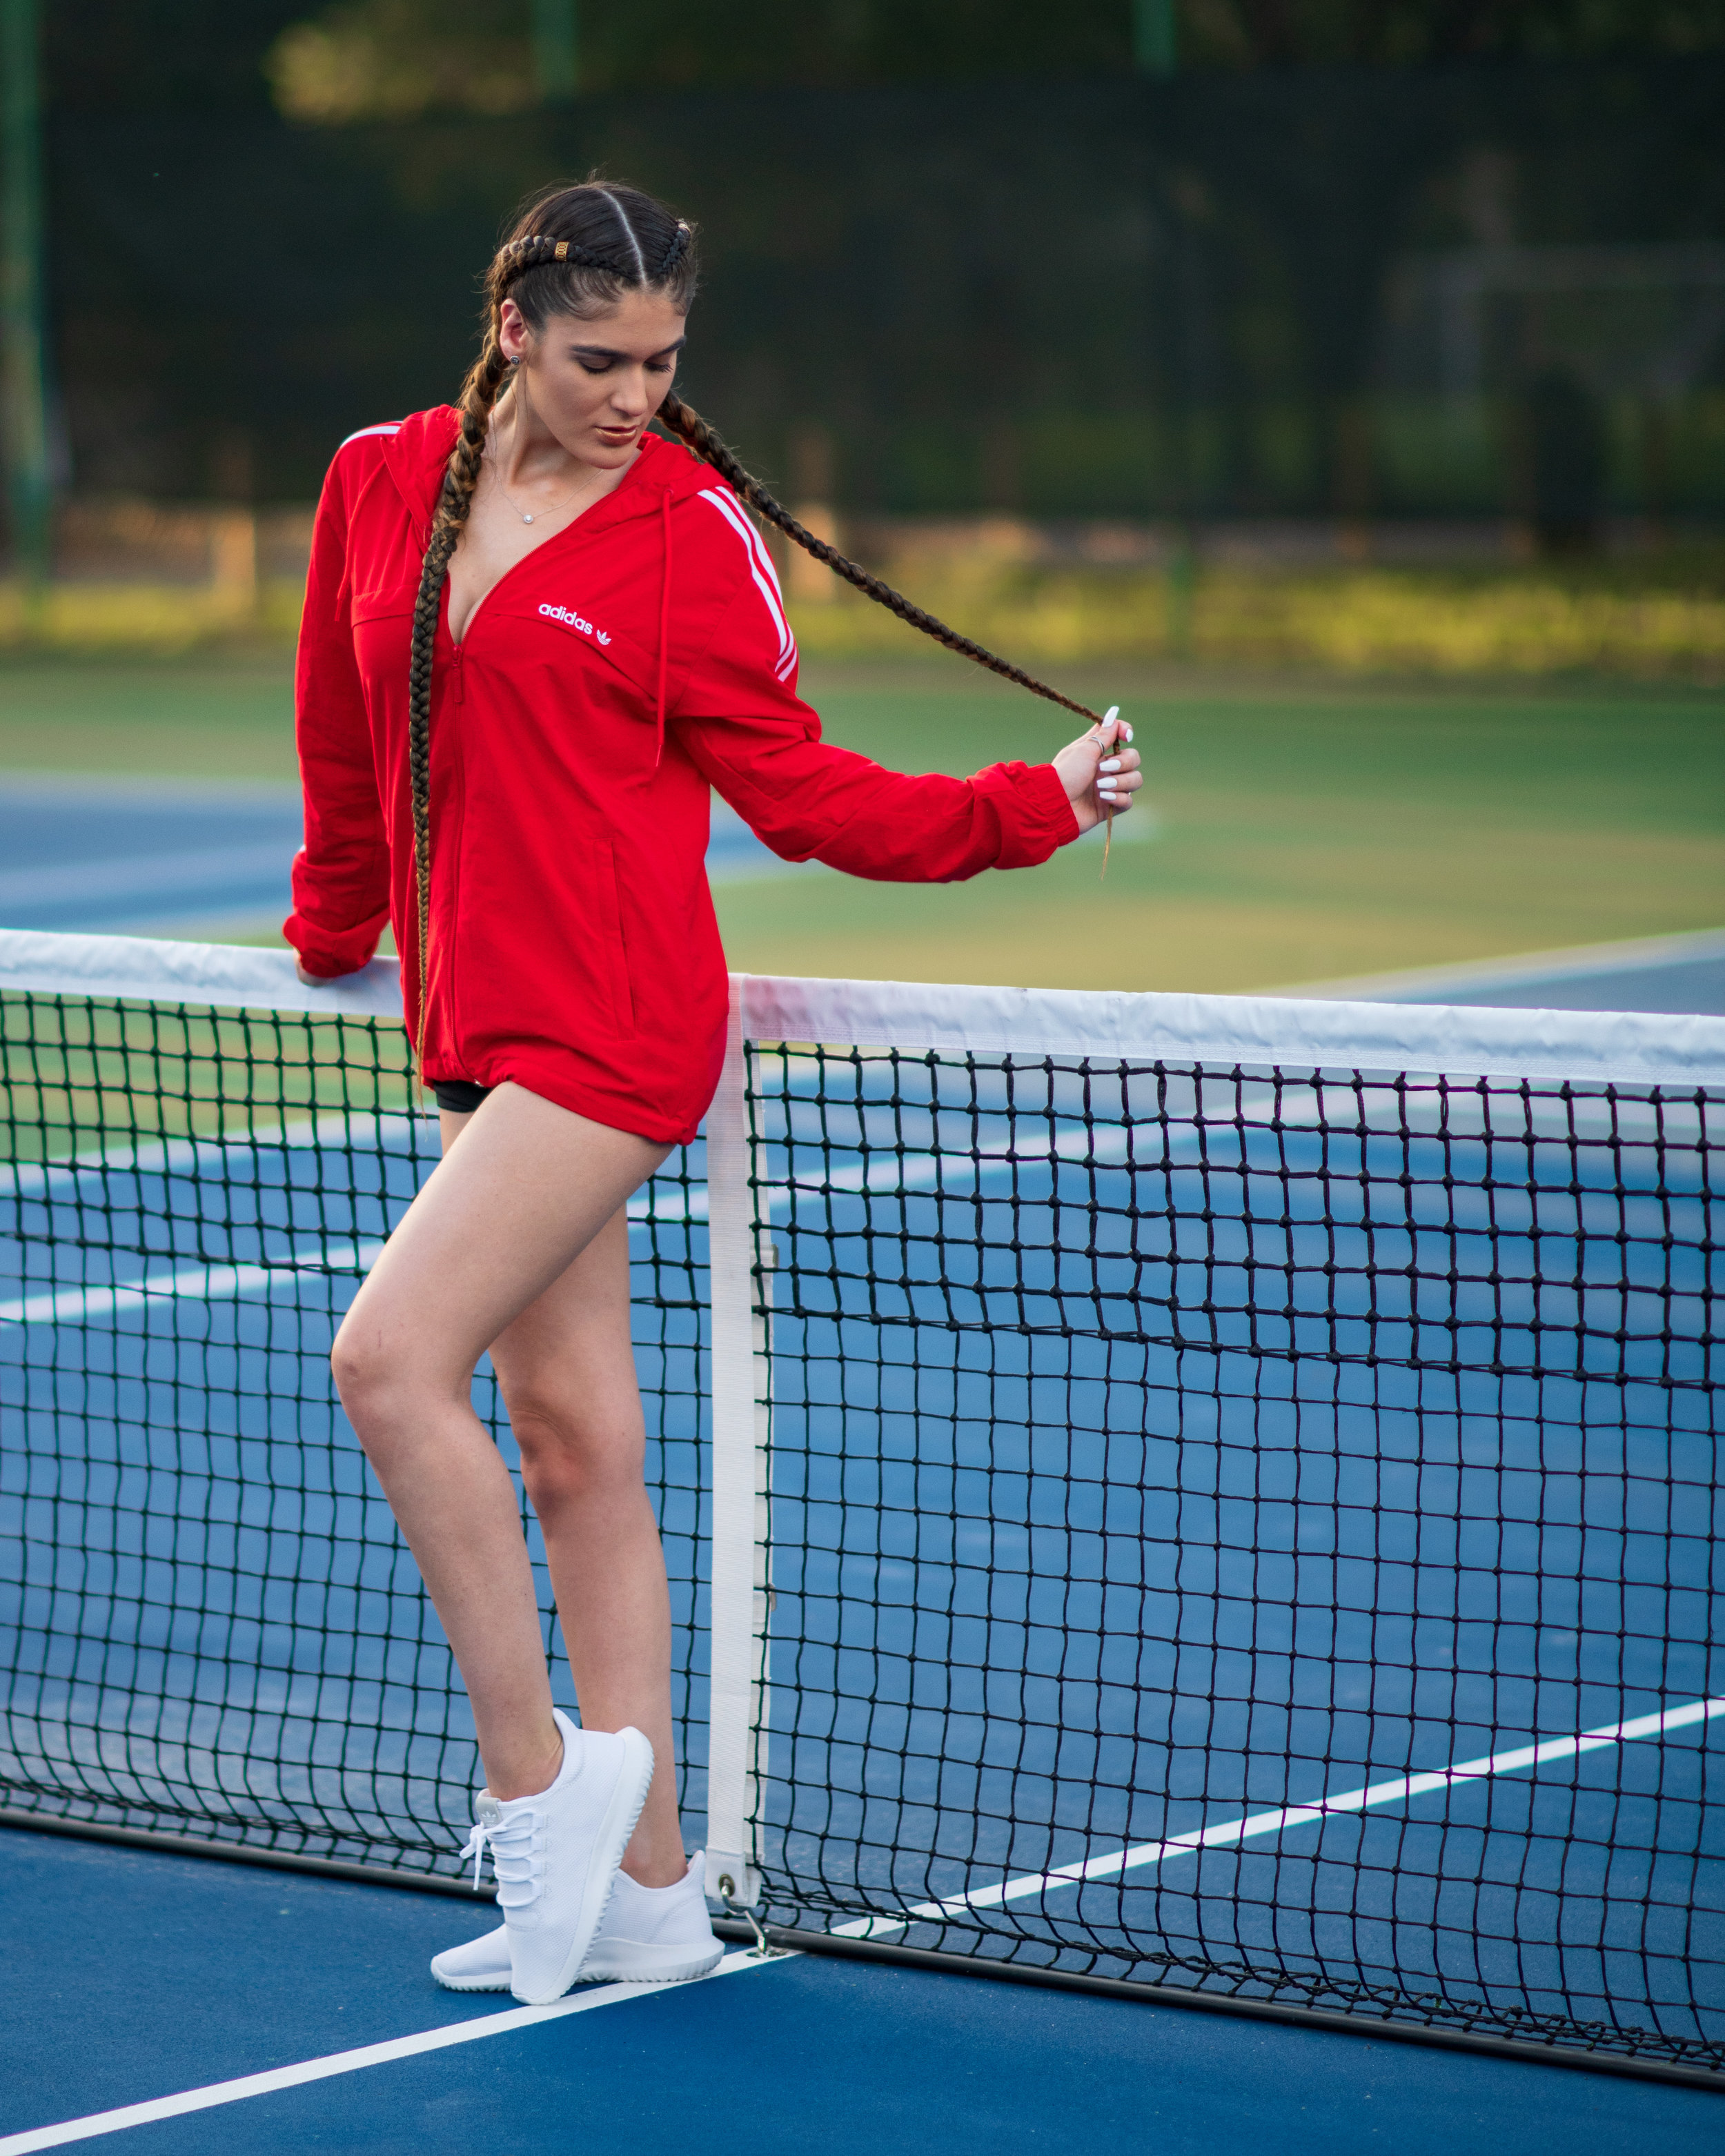 Giselle Tennis Shoot (Tyler).jpg